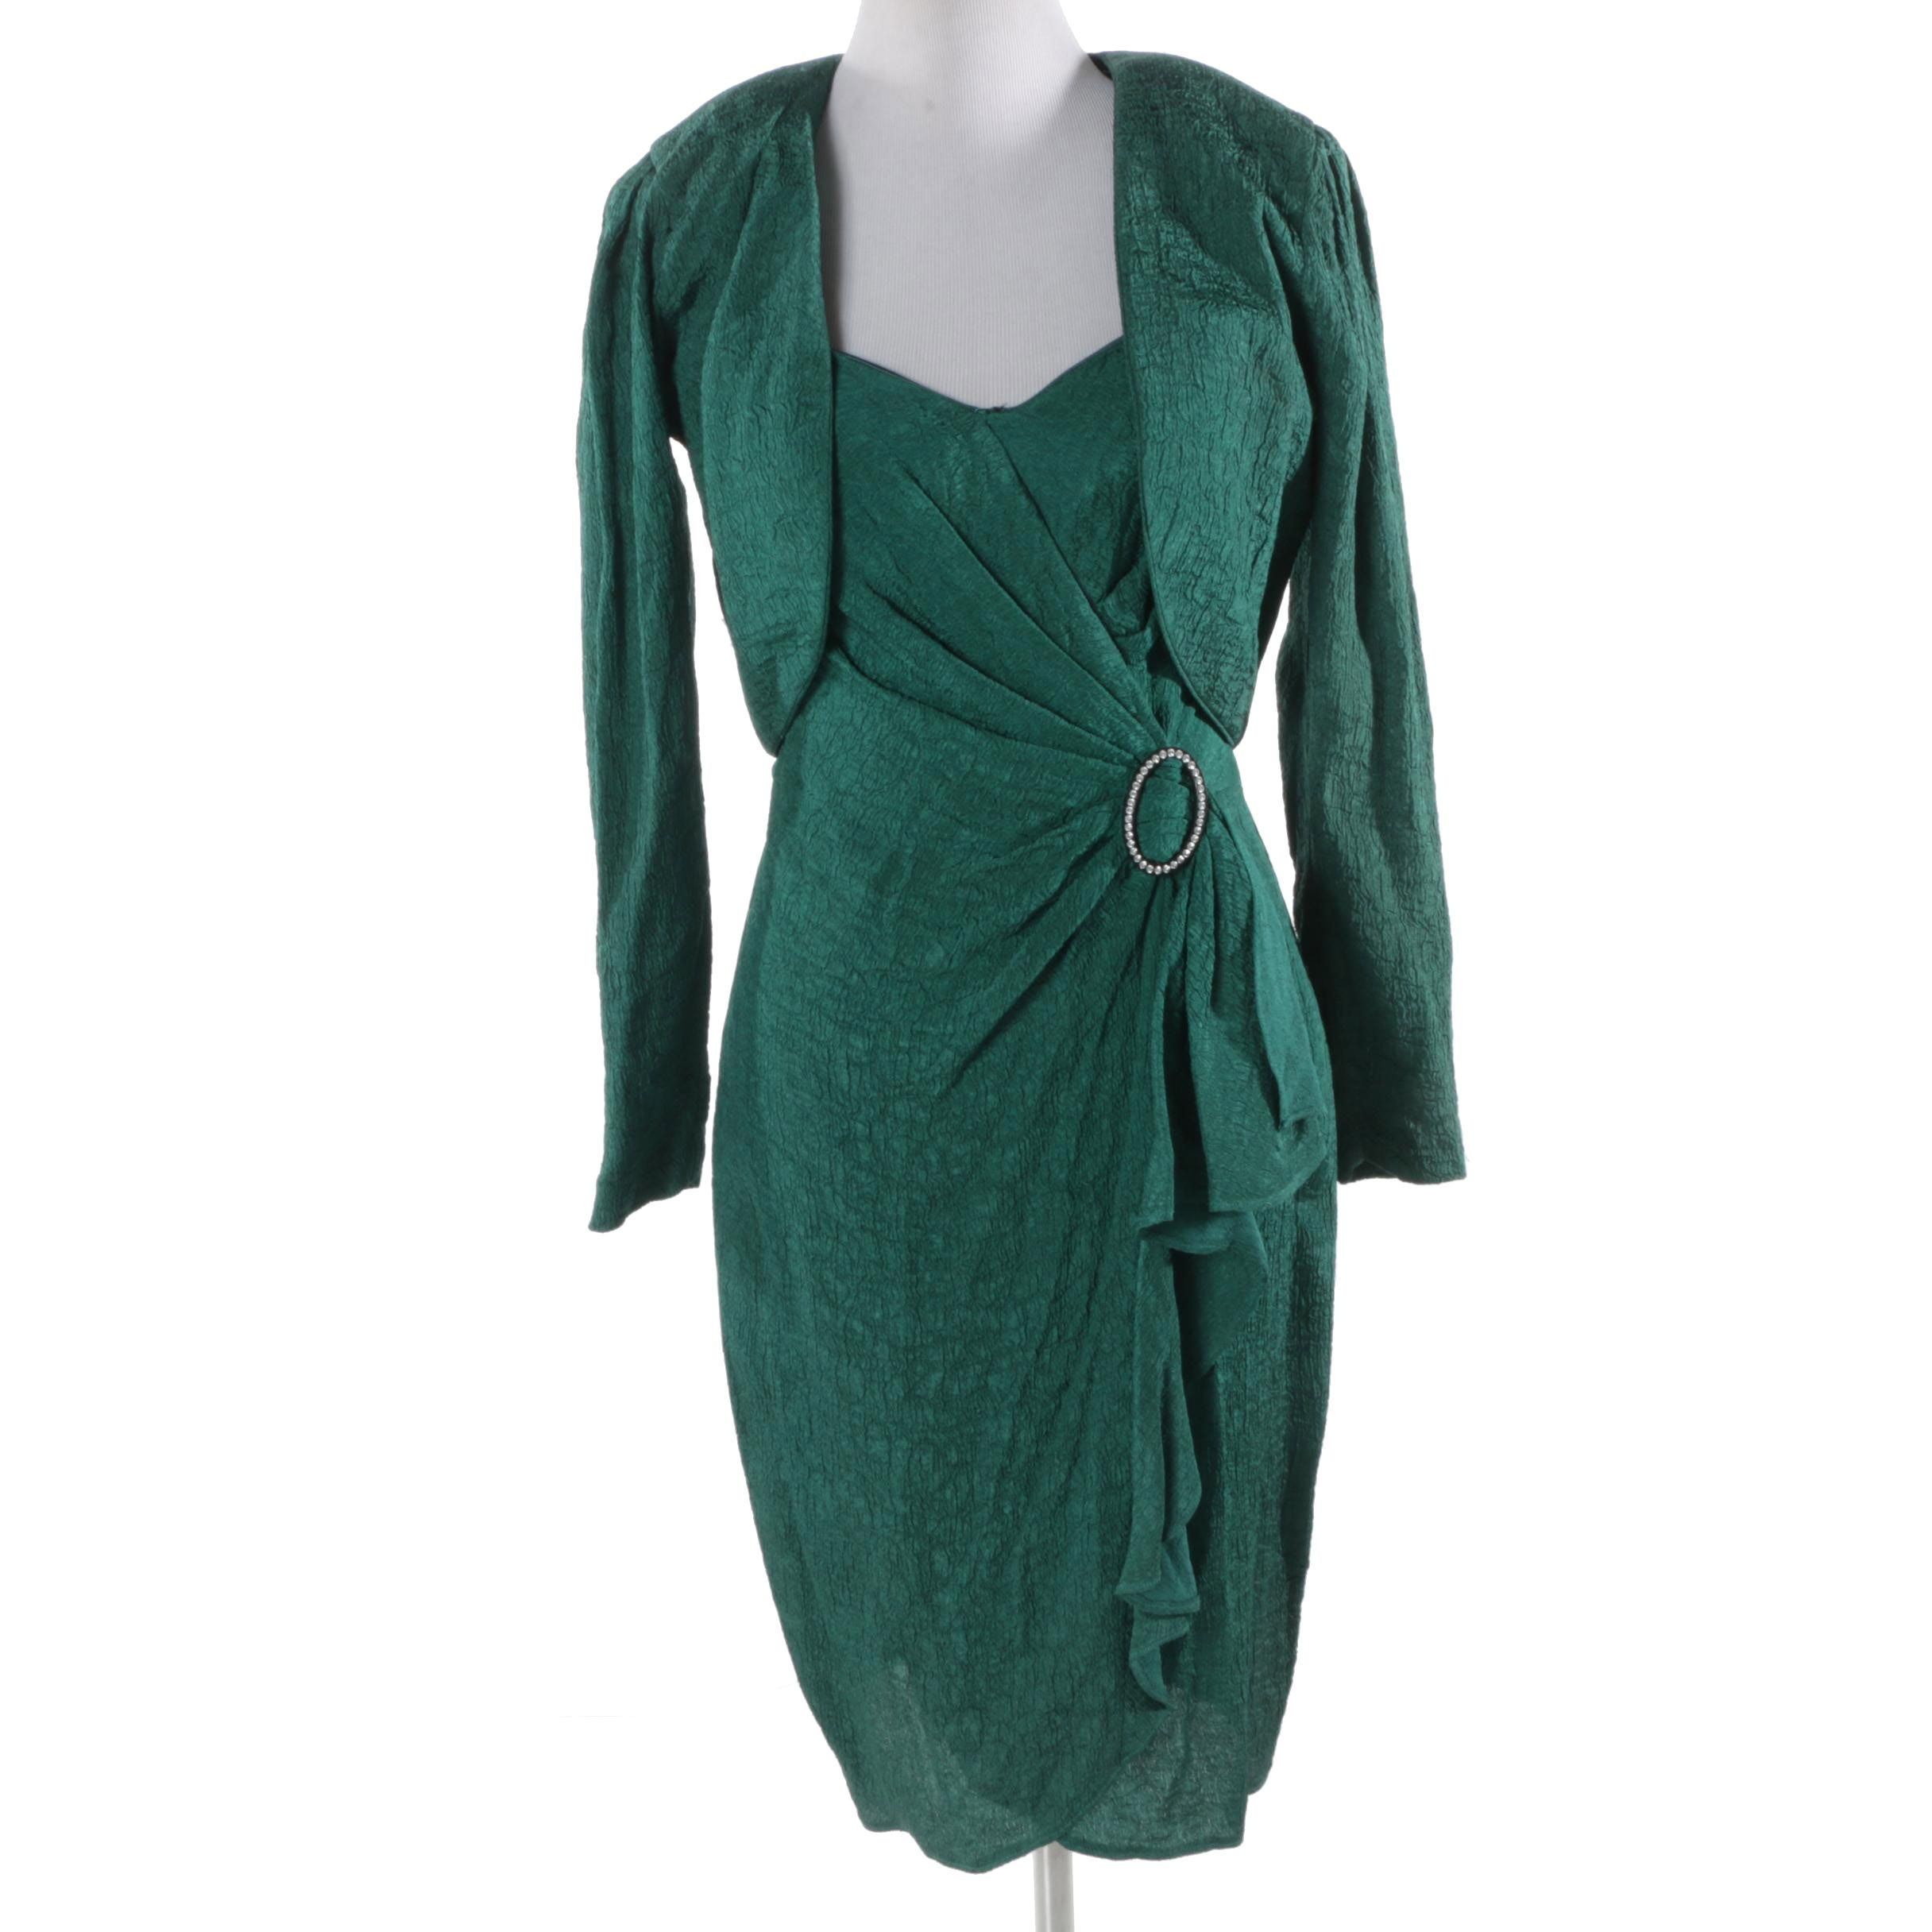 BB Collection Teal Sleeveless Dress with Jacket